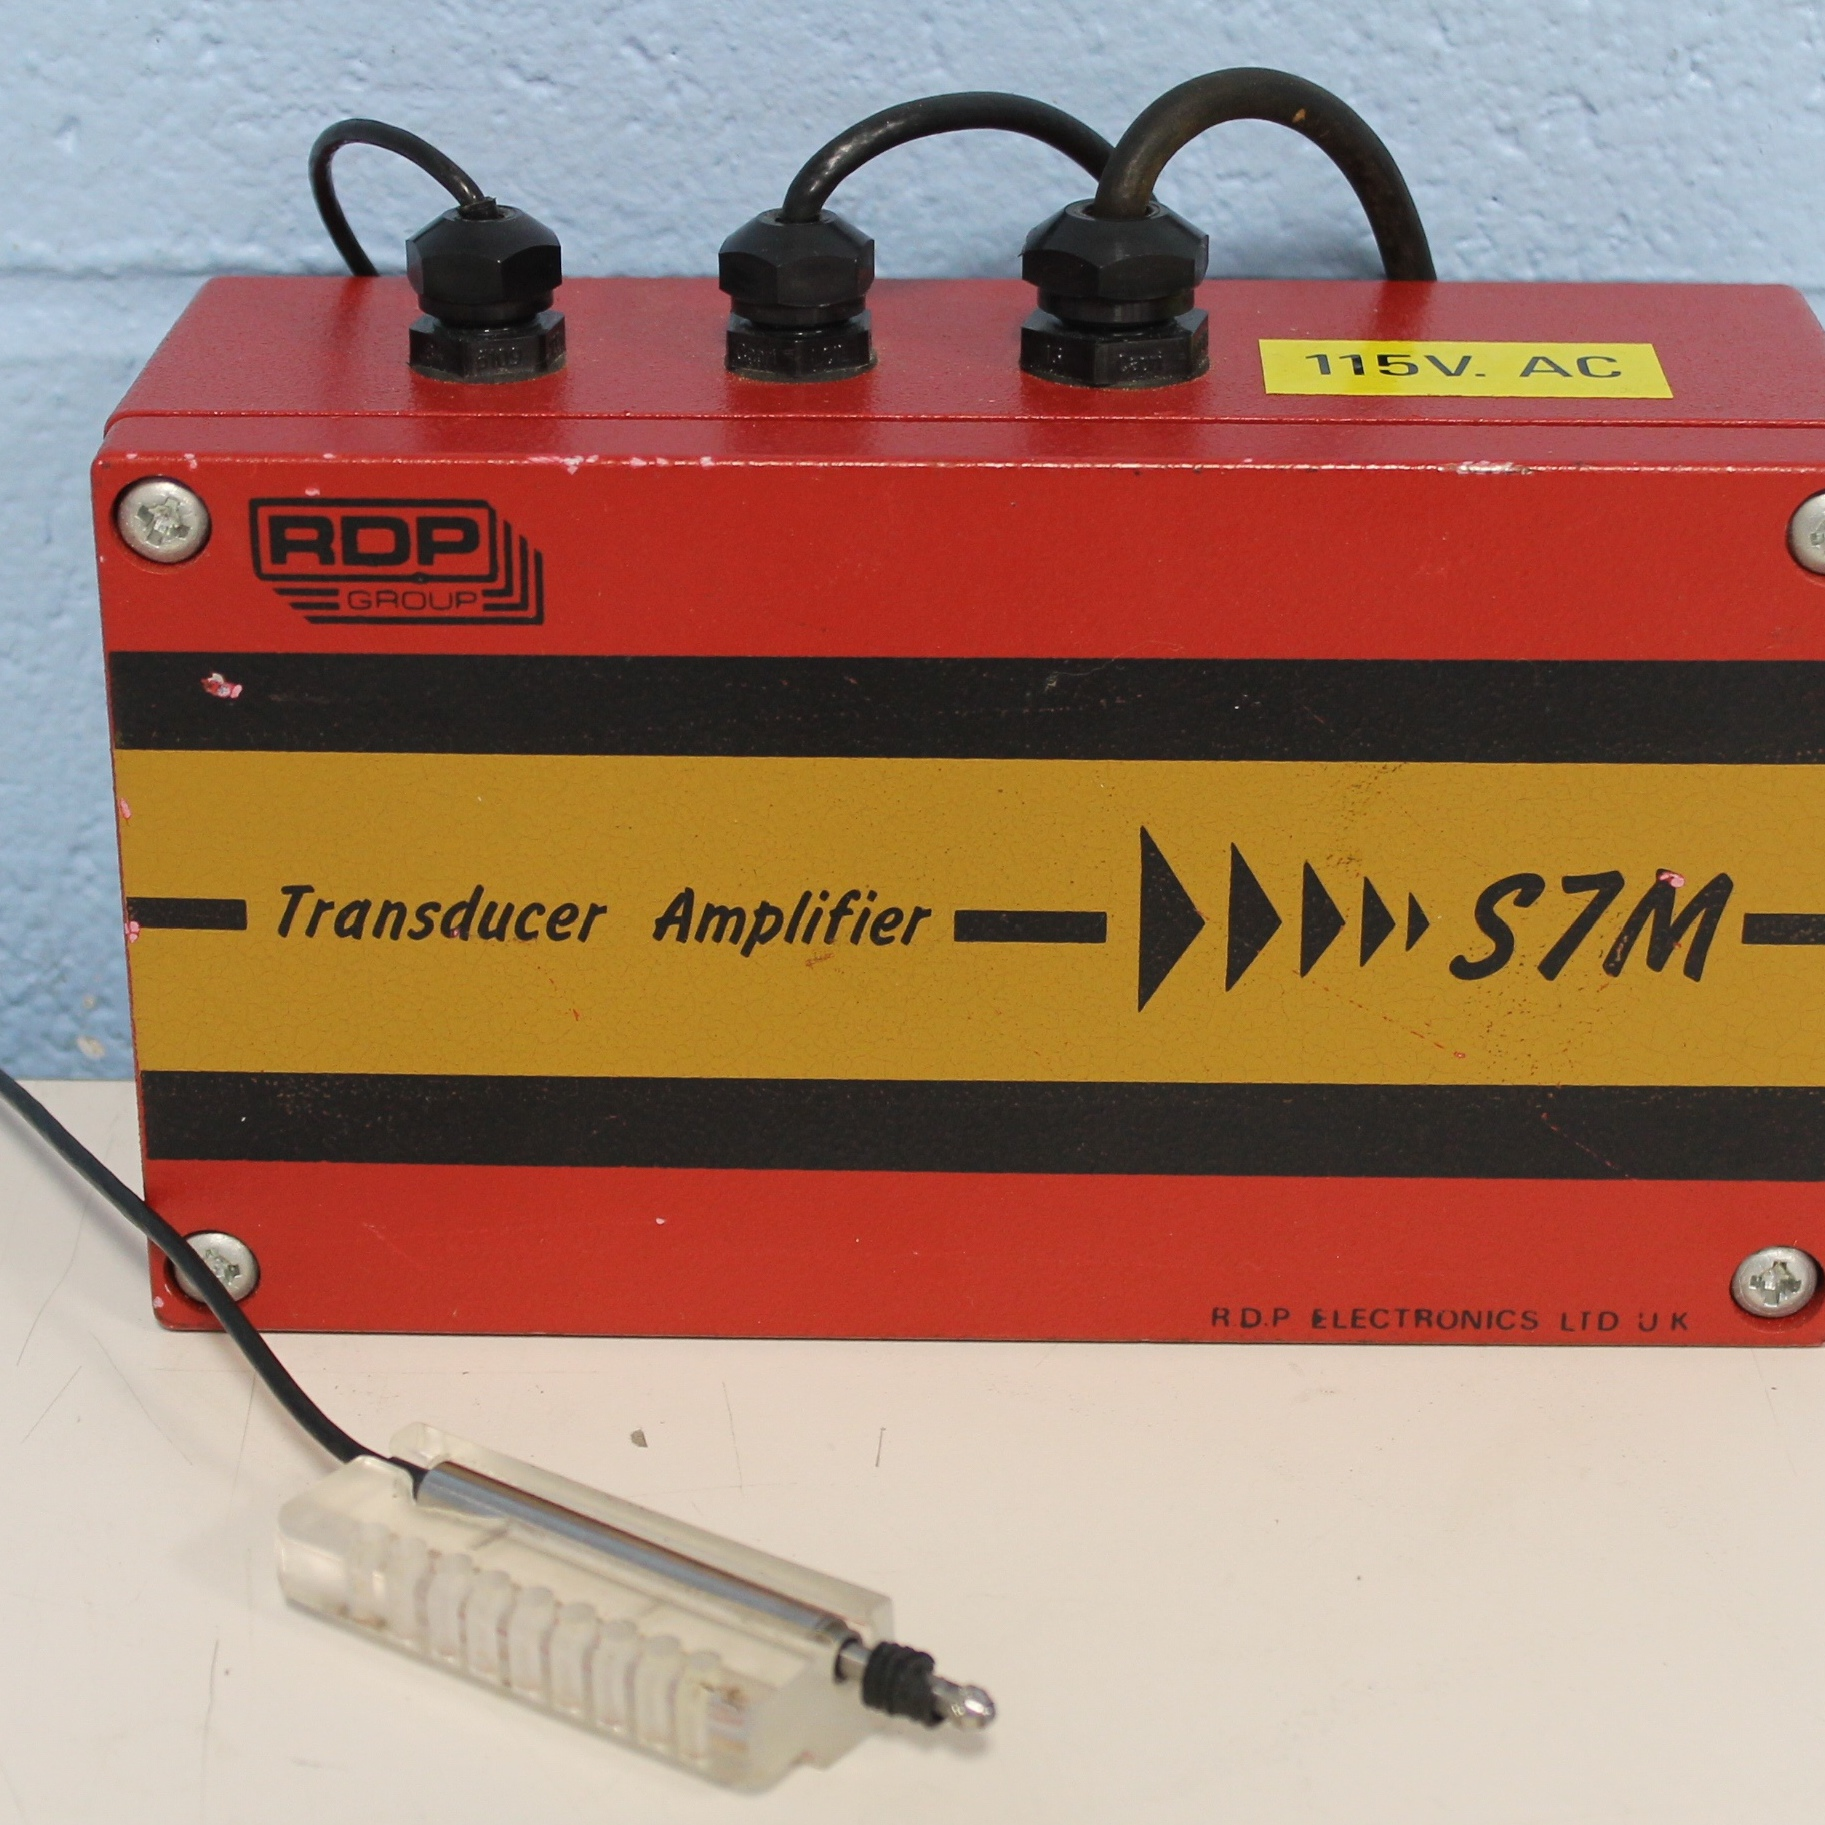 Transducer Amplifier S7M Model 2B Name